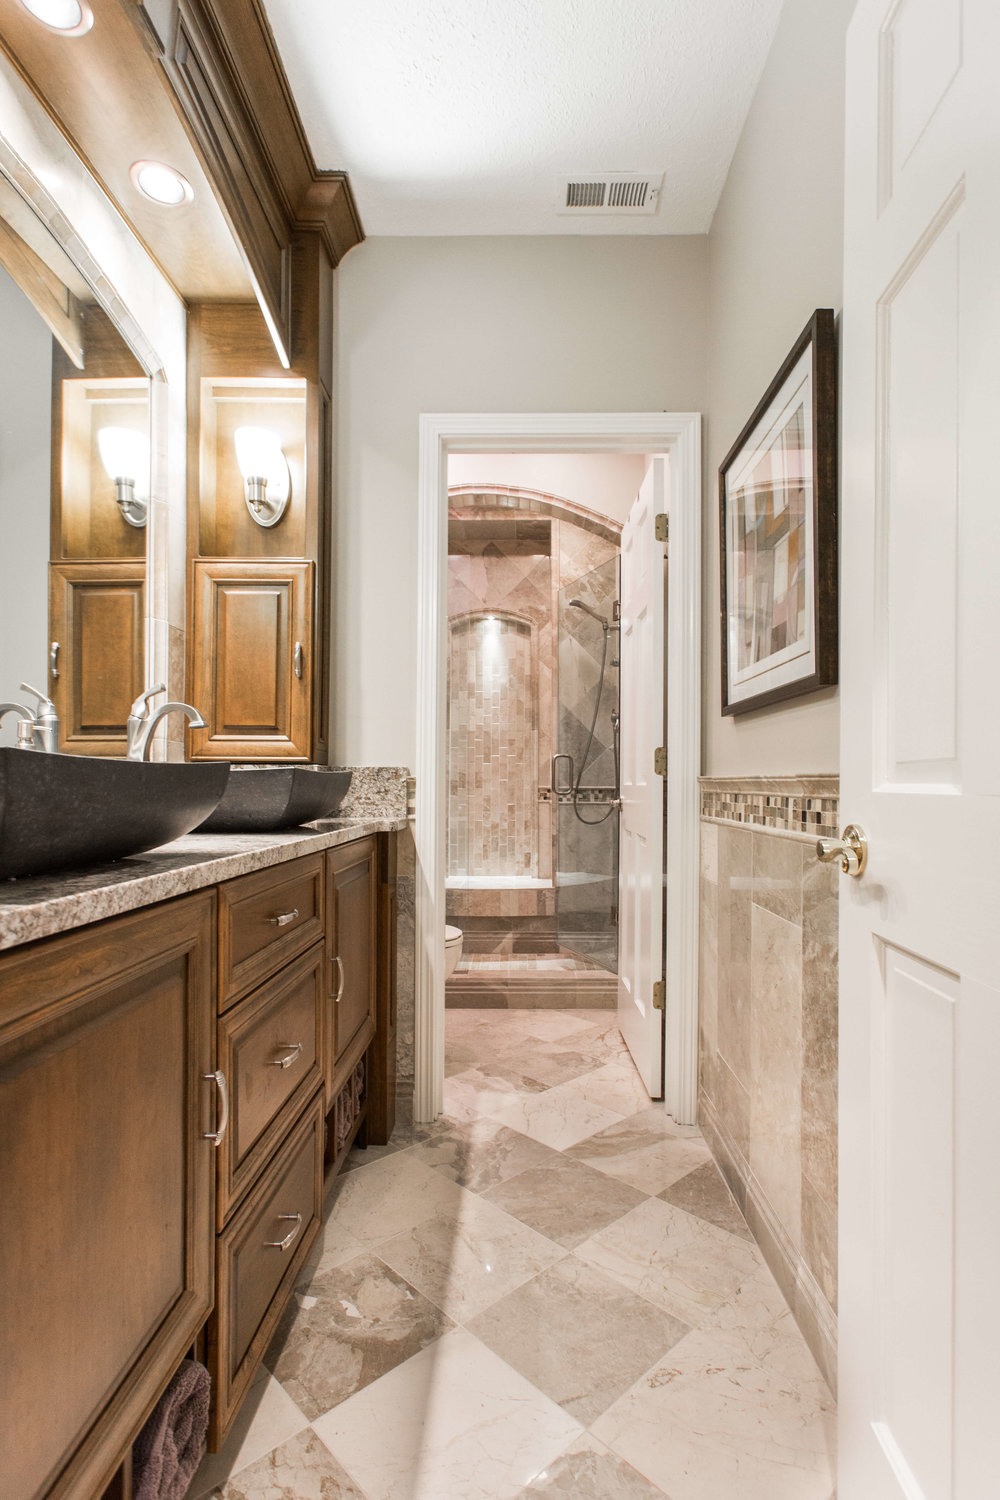 detailed toperfection - Bathroom Remodel